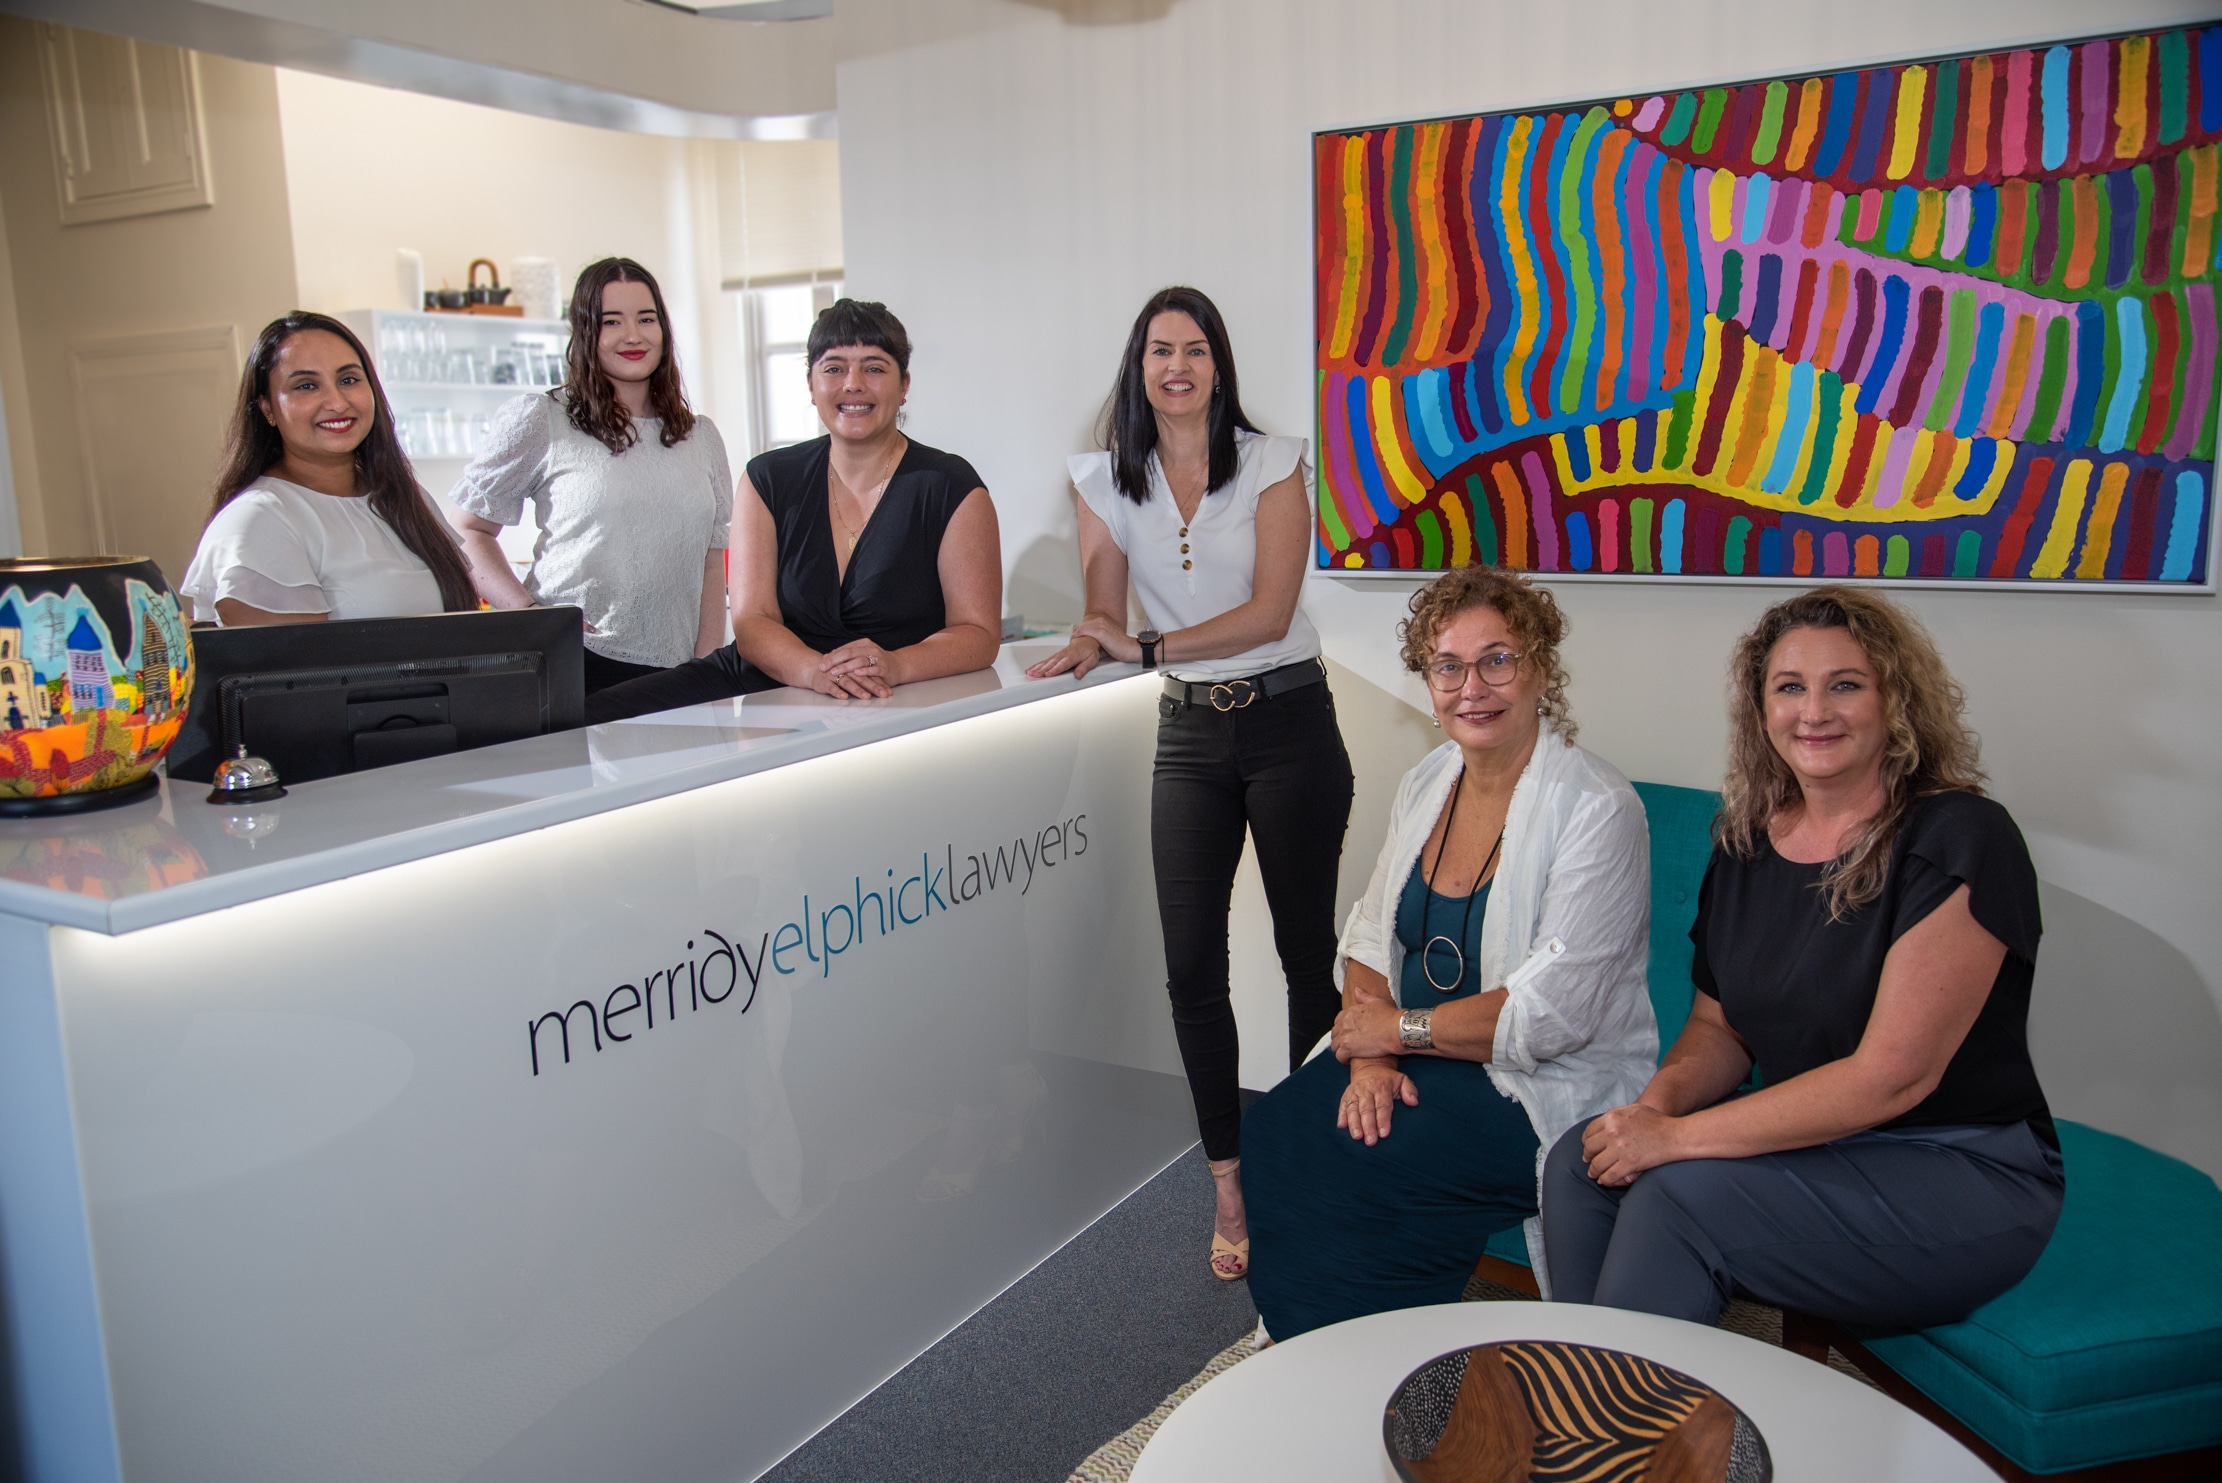 Family Law, Family Law Services, Merridy Elphick Lawyers